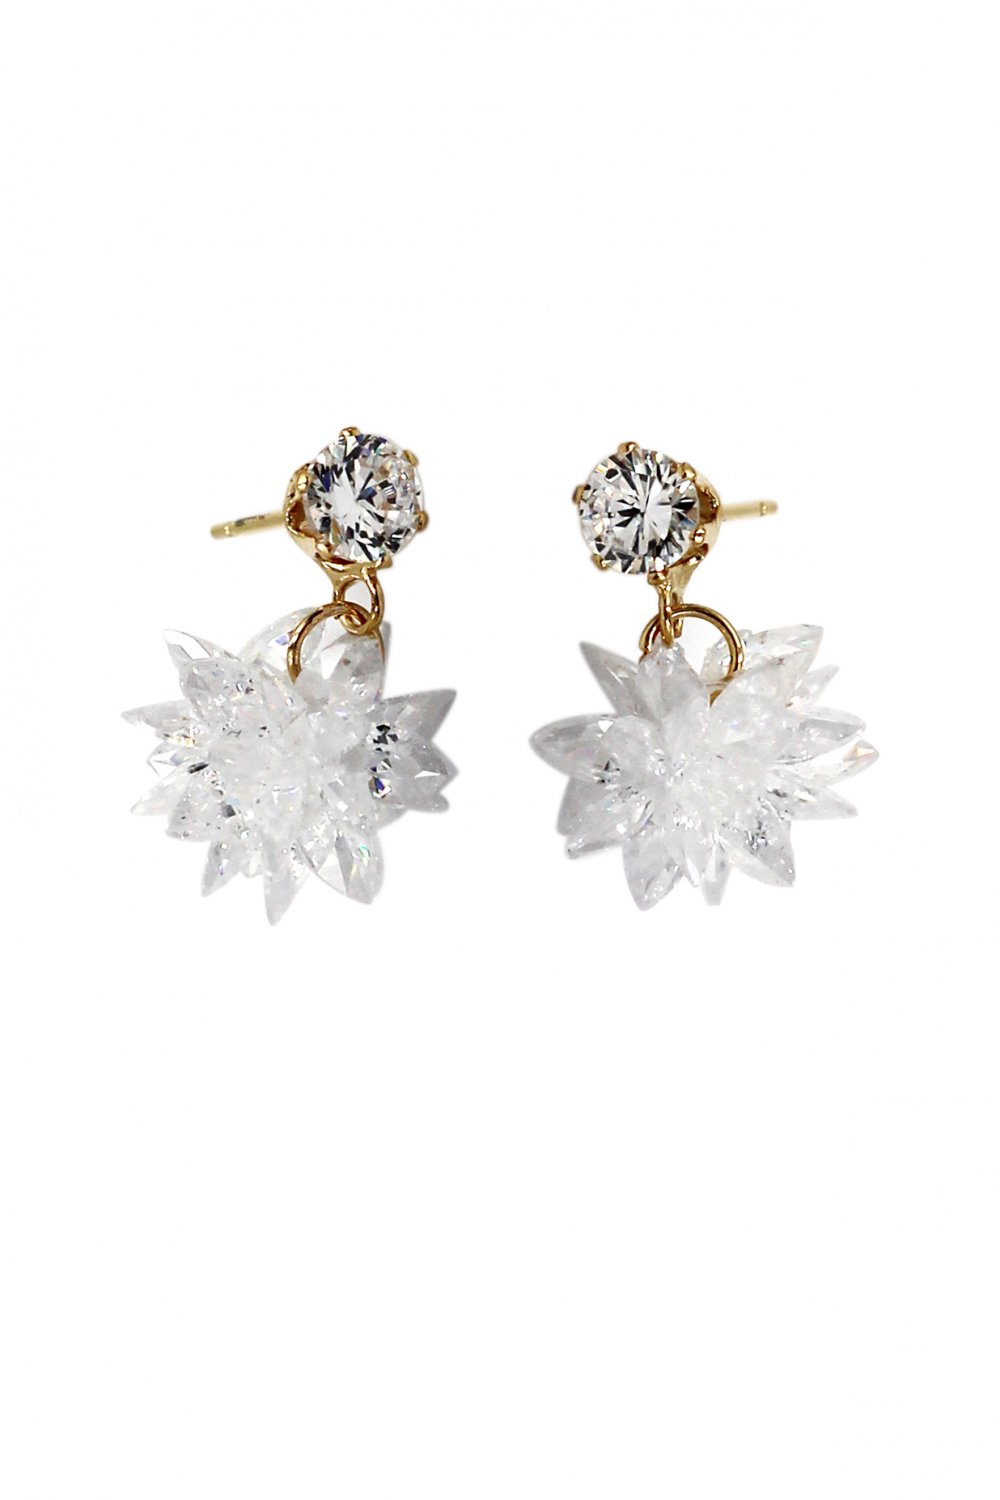 Shiny pendant ice crystals gold earrings